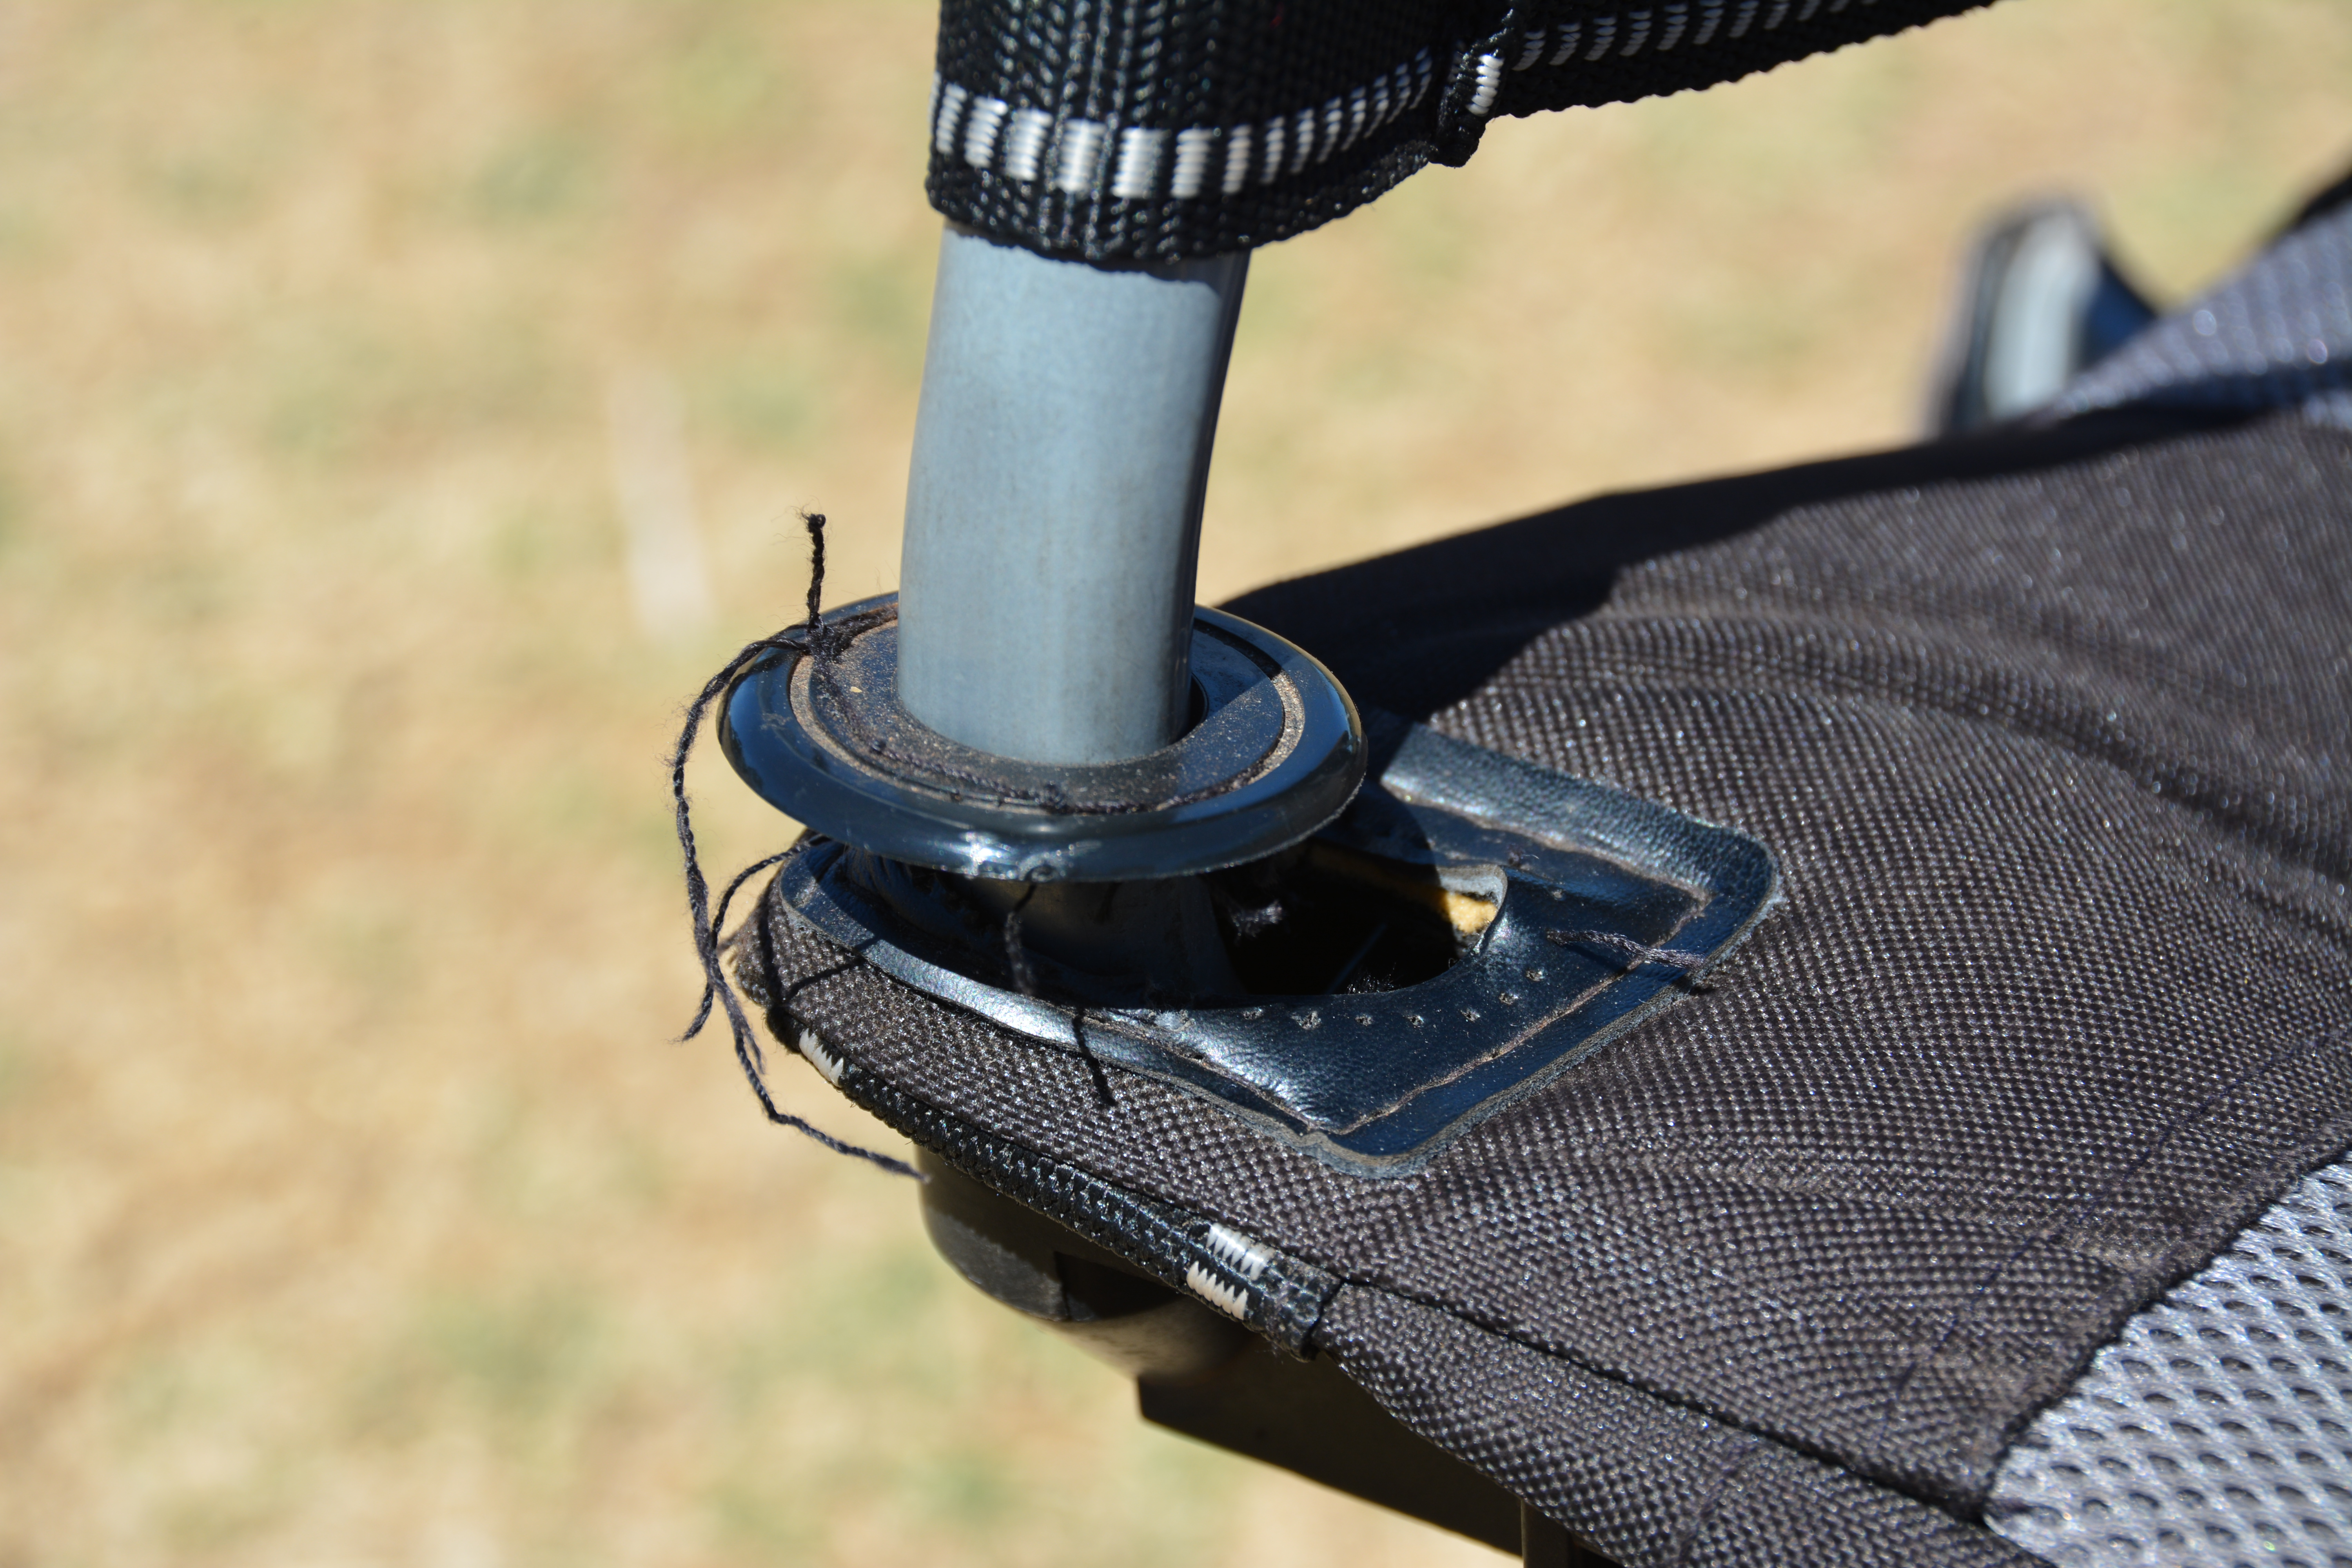 oztent king kokoda chair review replacement parts chairs travel around australia stitching issue